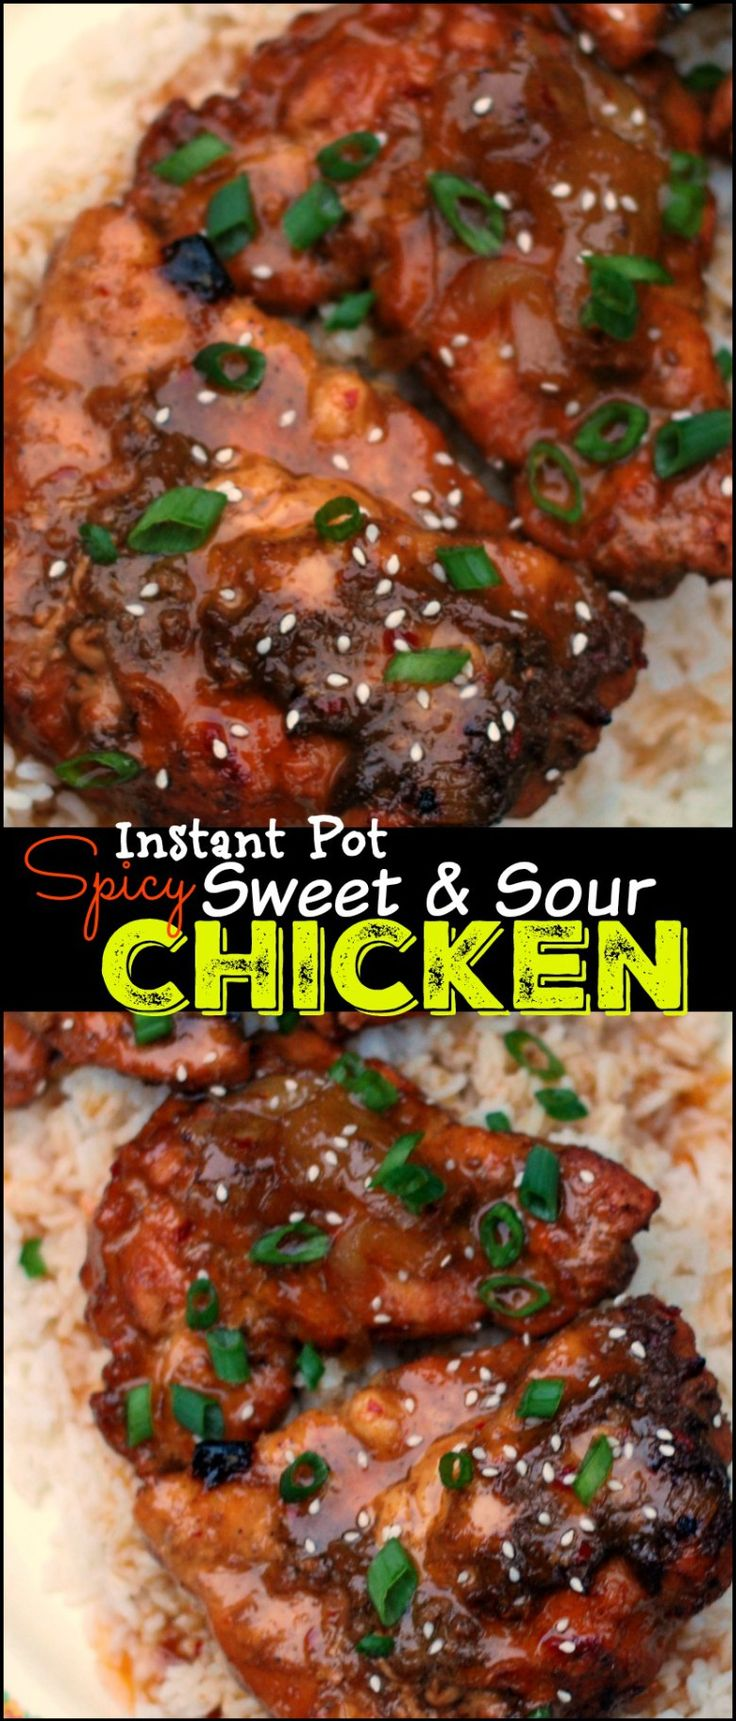 Instant Pot Spicy Sweet & Sour Chicken| Aunt Bee's Recipes